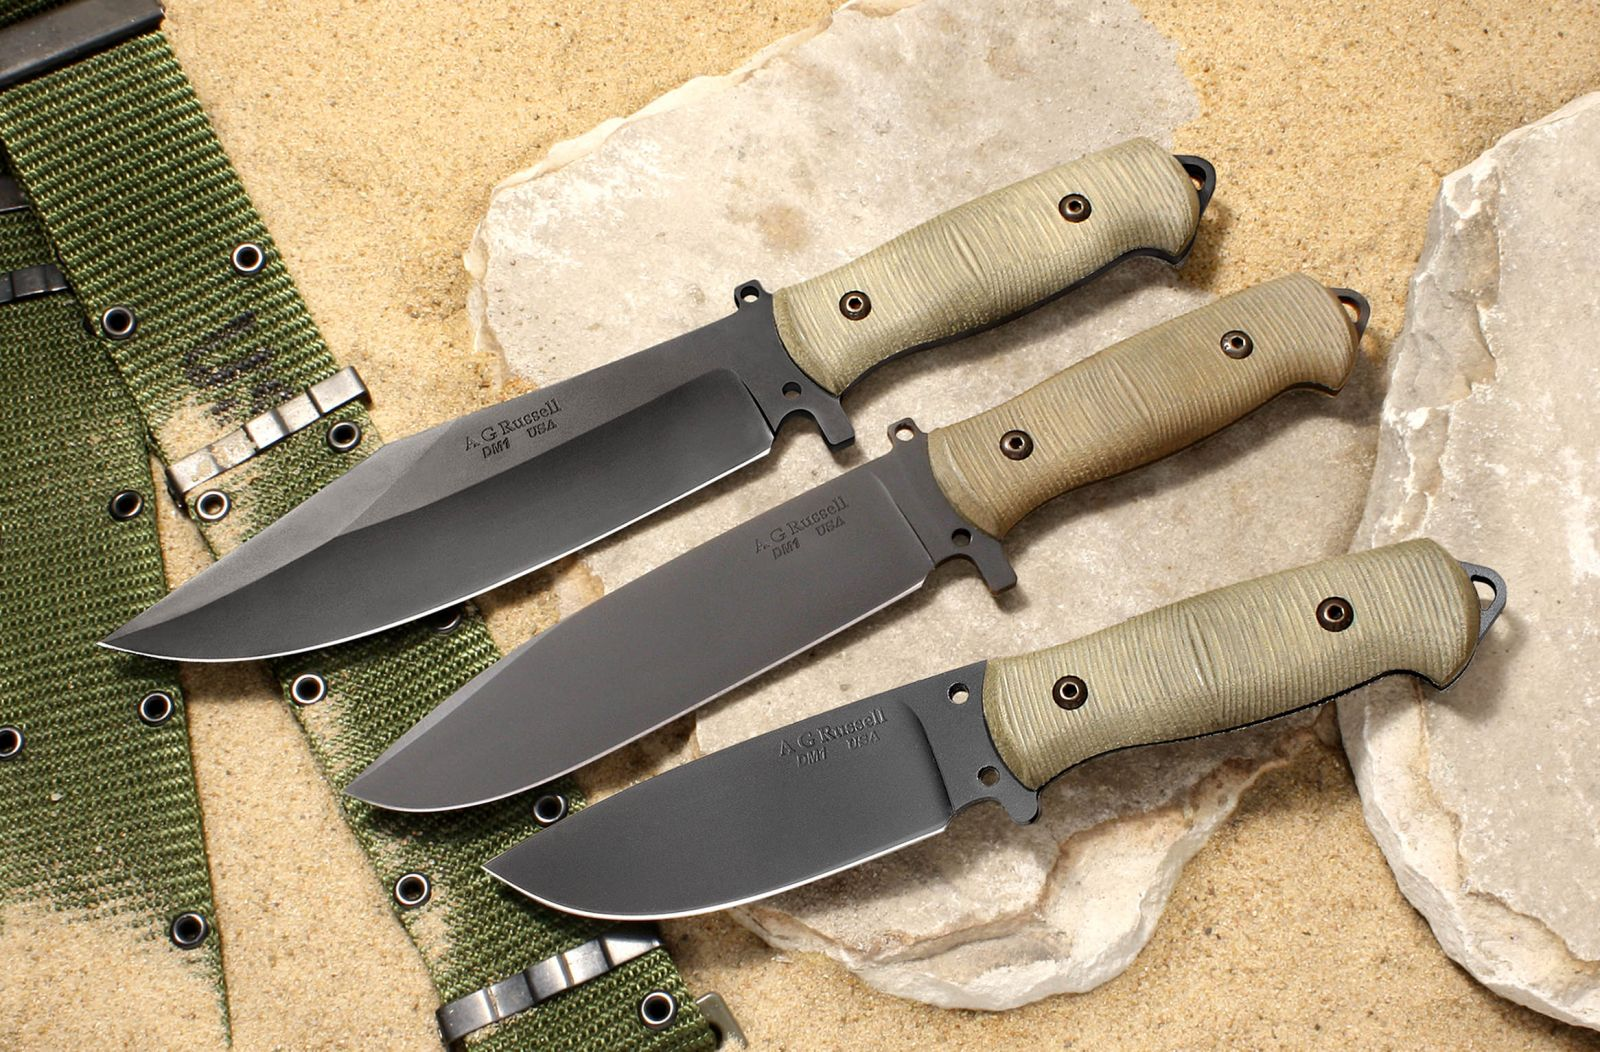 A.G. Russell USA Shopmade Sandbox Knife Series - Non-stainless steel DM-1